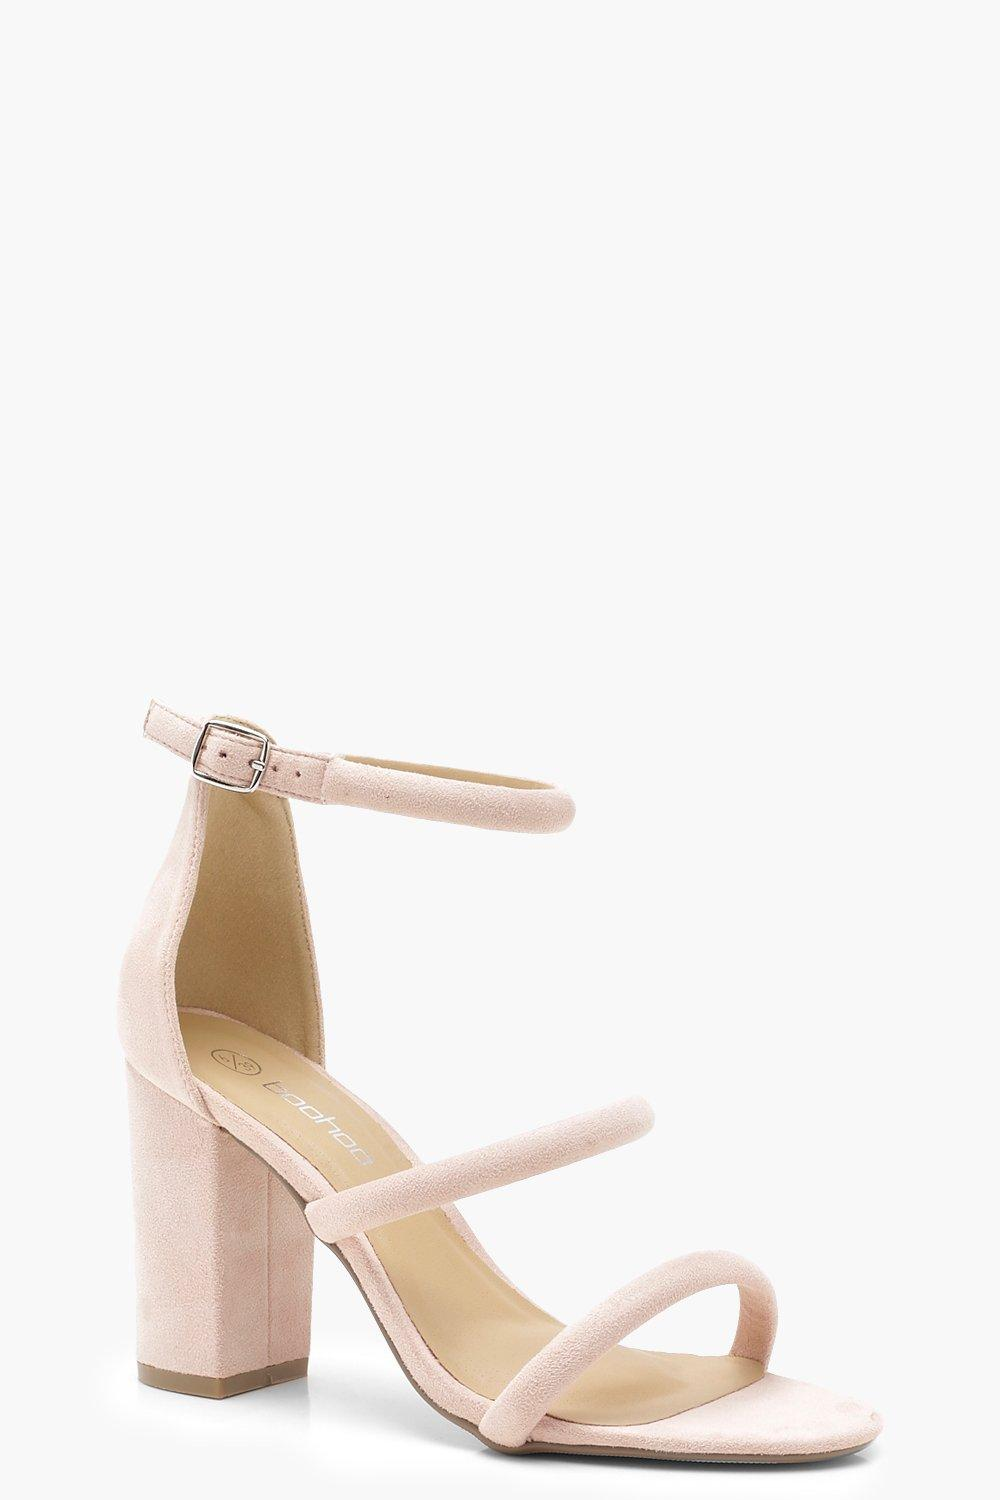 8ad67616c00 Triple Strap Block Heels. Hover to zoom